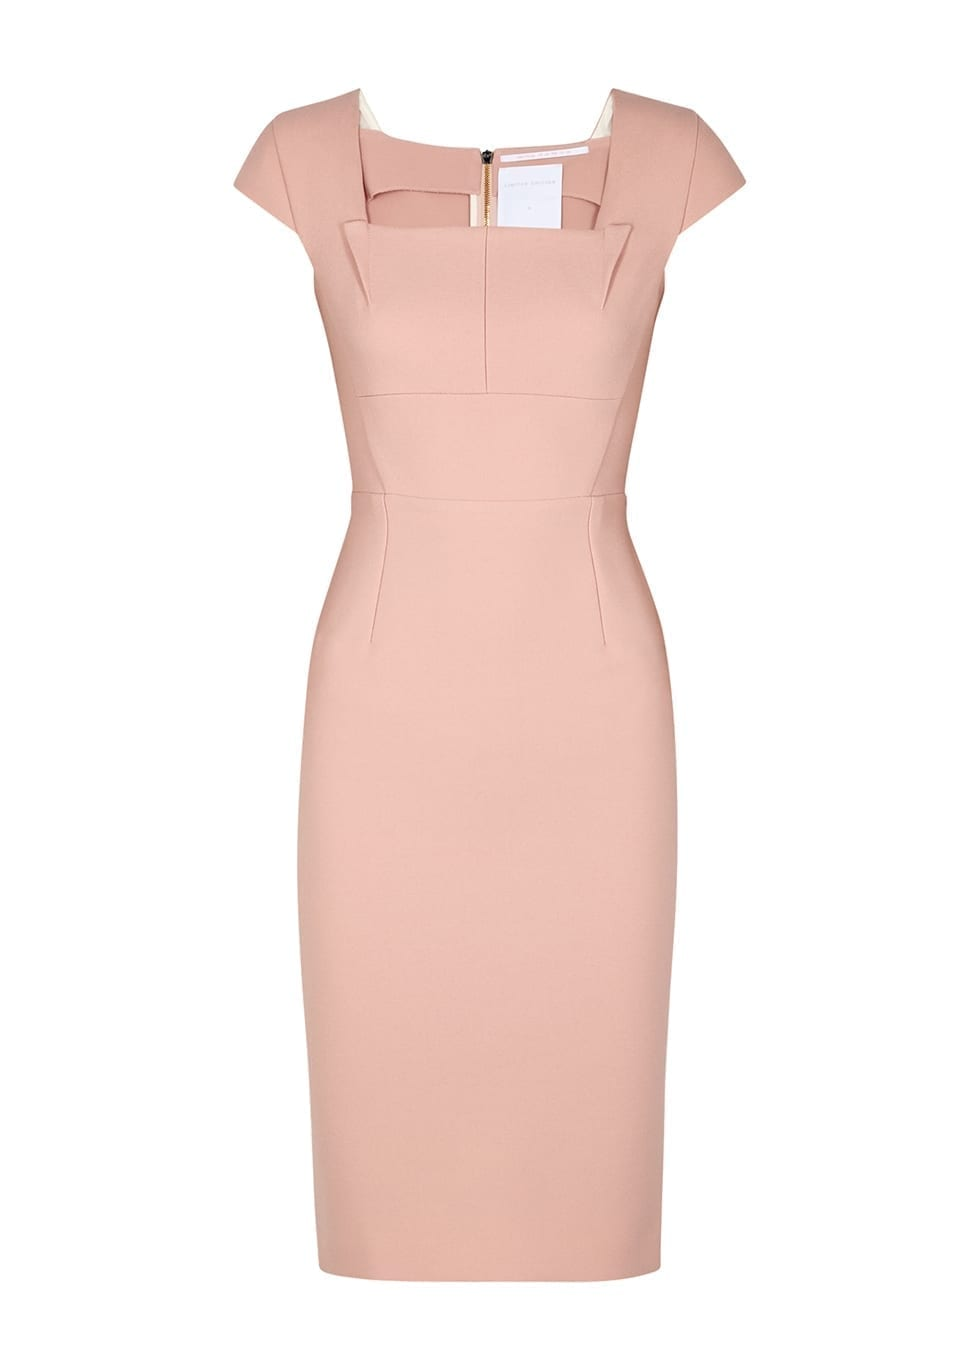 ROLAND MOURET Jeddler Pink Dress